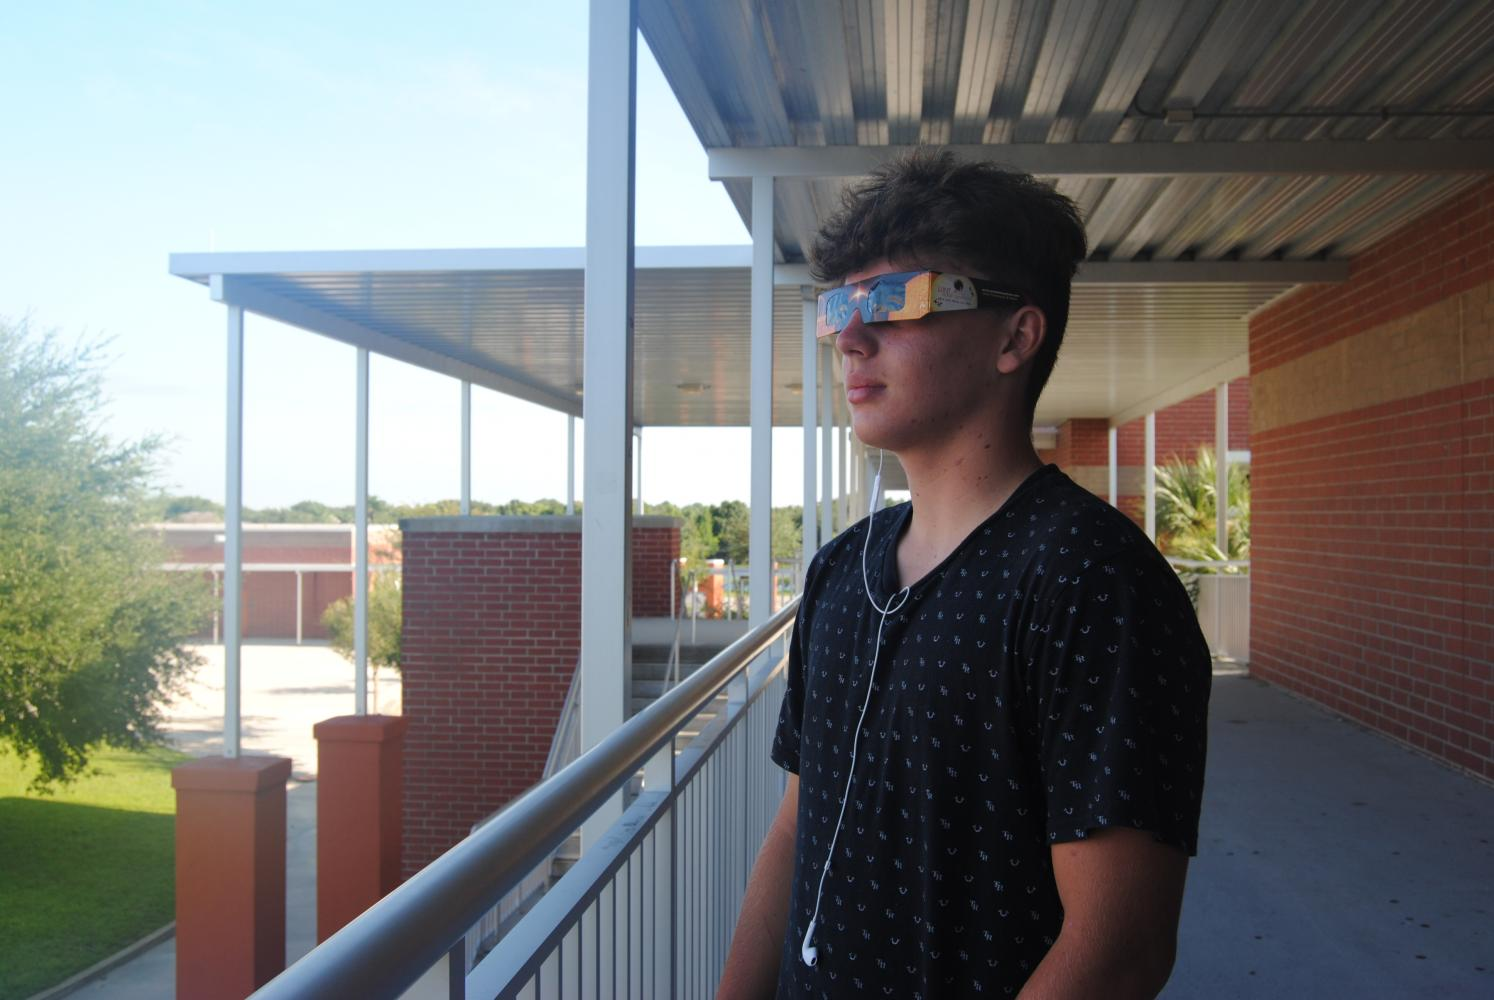 Freshman Hunter Soto prepares for the viewing of the solar eclipse.  One of the safe ways to look at the eclipse is to use NASA approved eclipse glasses.